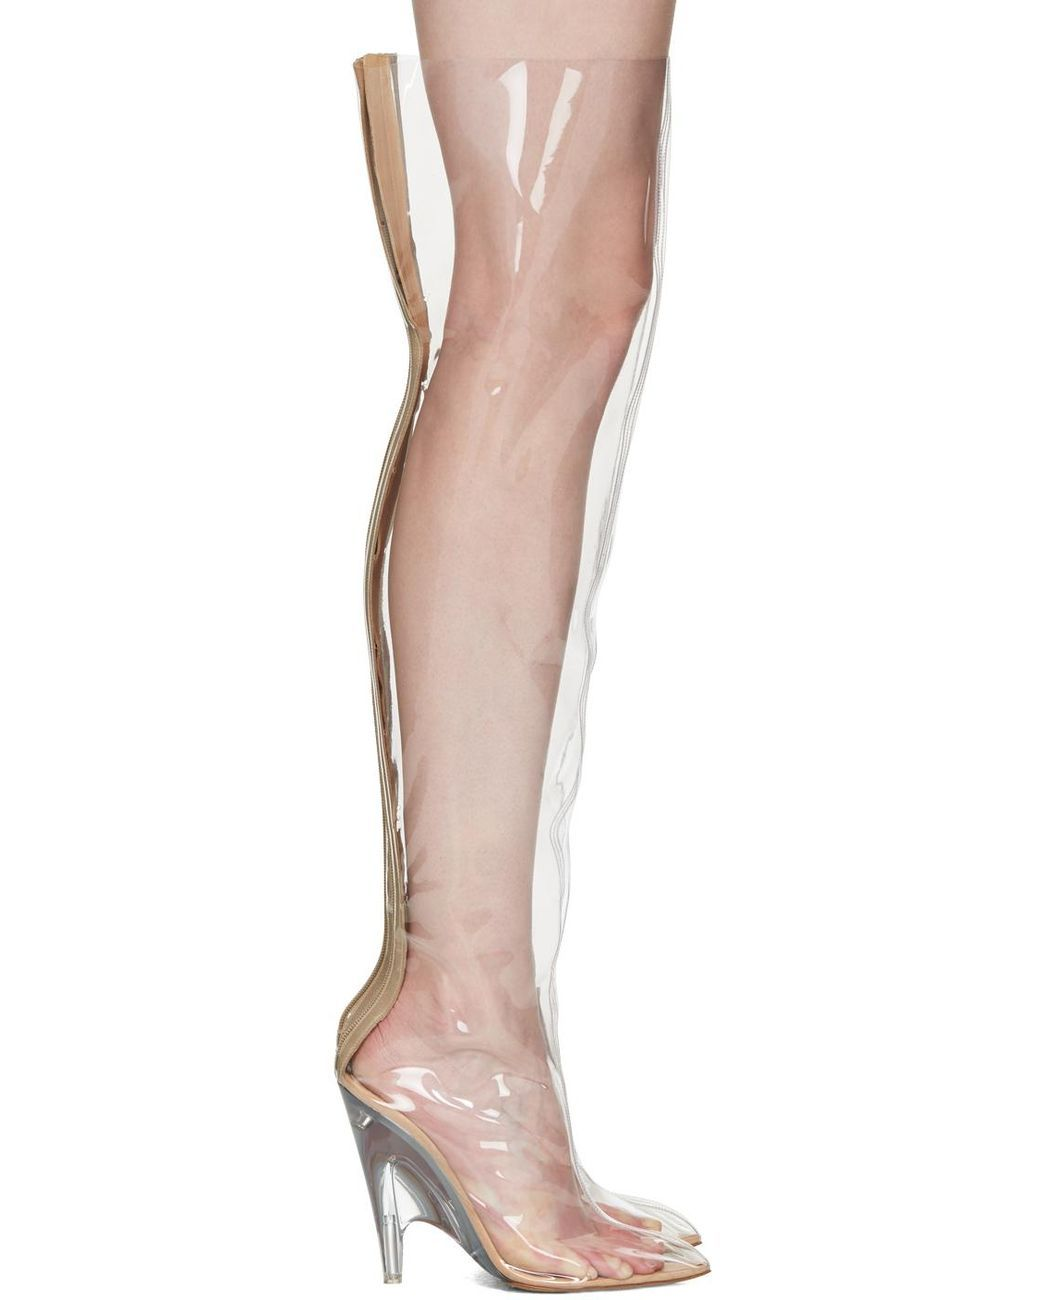 4dc7610ccd3ef Women's Transparent Pvc Tubular Boots | Heels on Fleek - High Heels ...